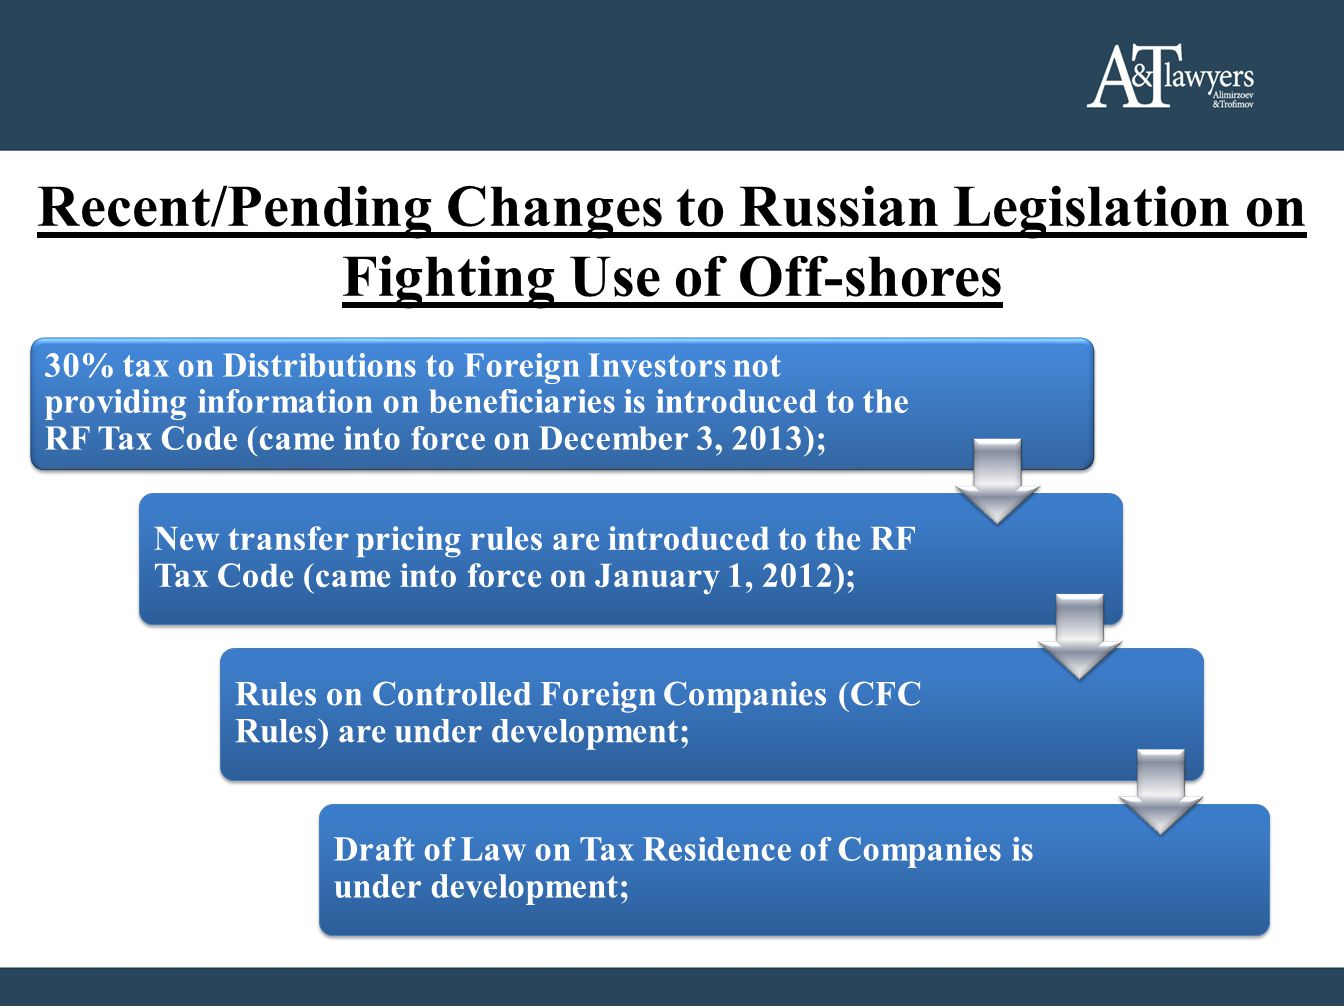 Recent/Pending Changes to Russian Legislation on Fighting Use of Off-shores 30% tax on Distributions to Foreign Investors not providing information on